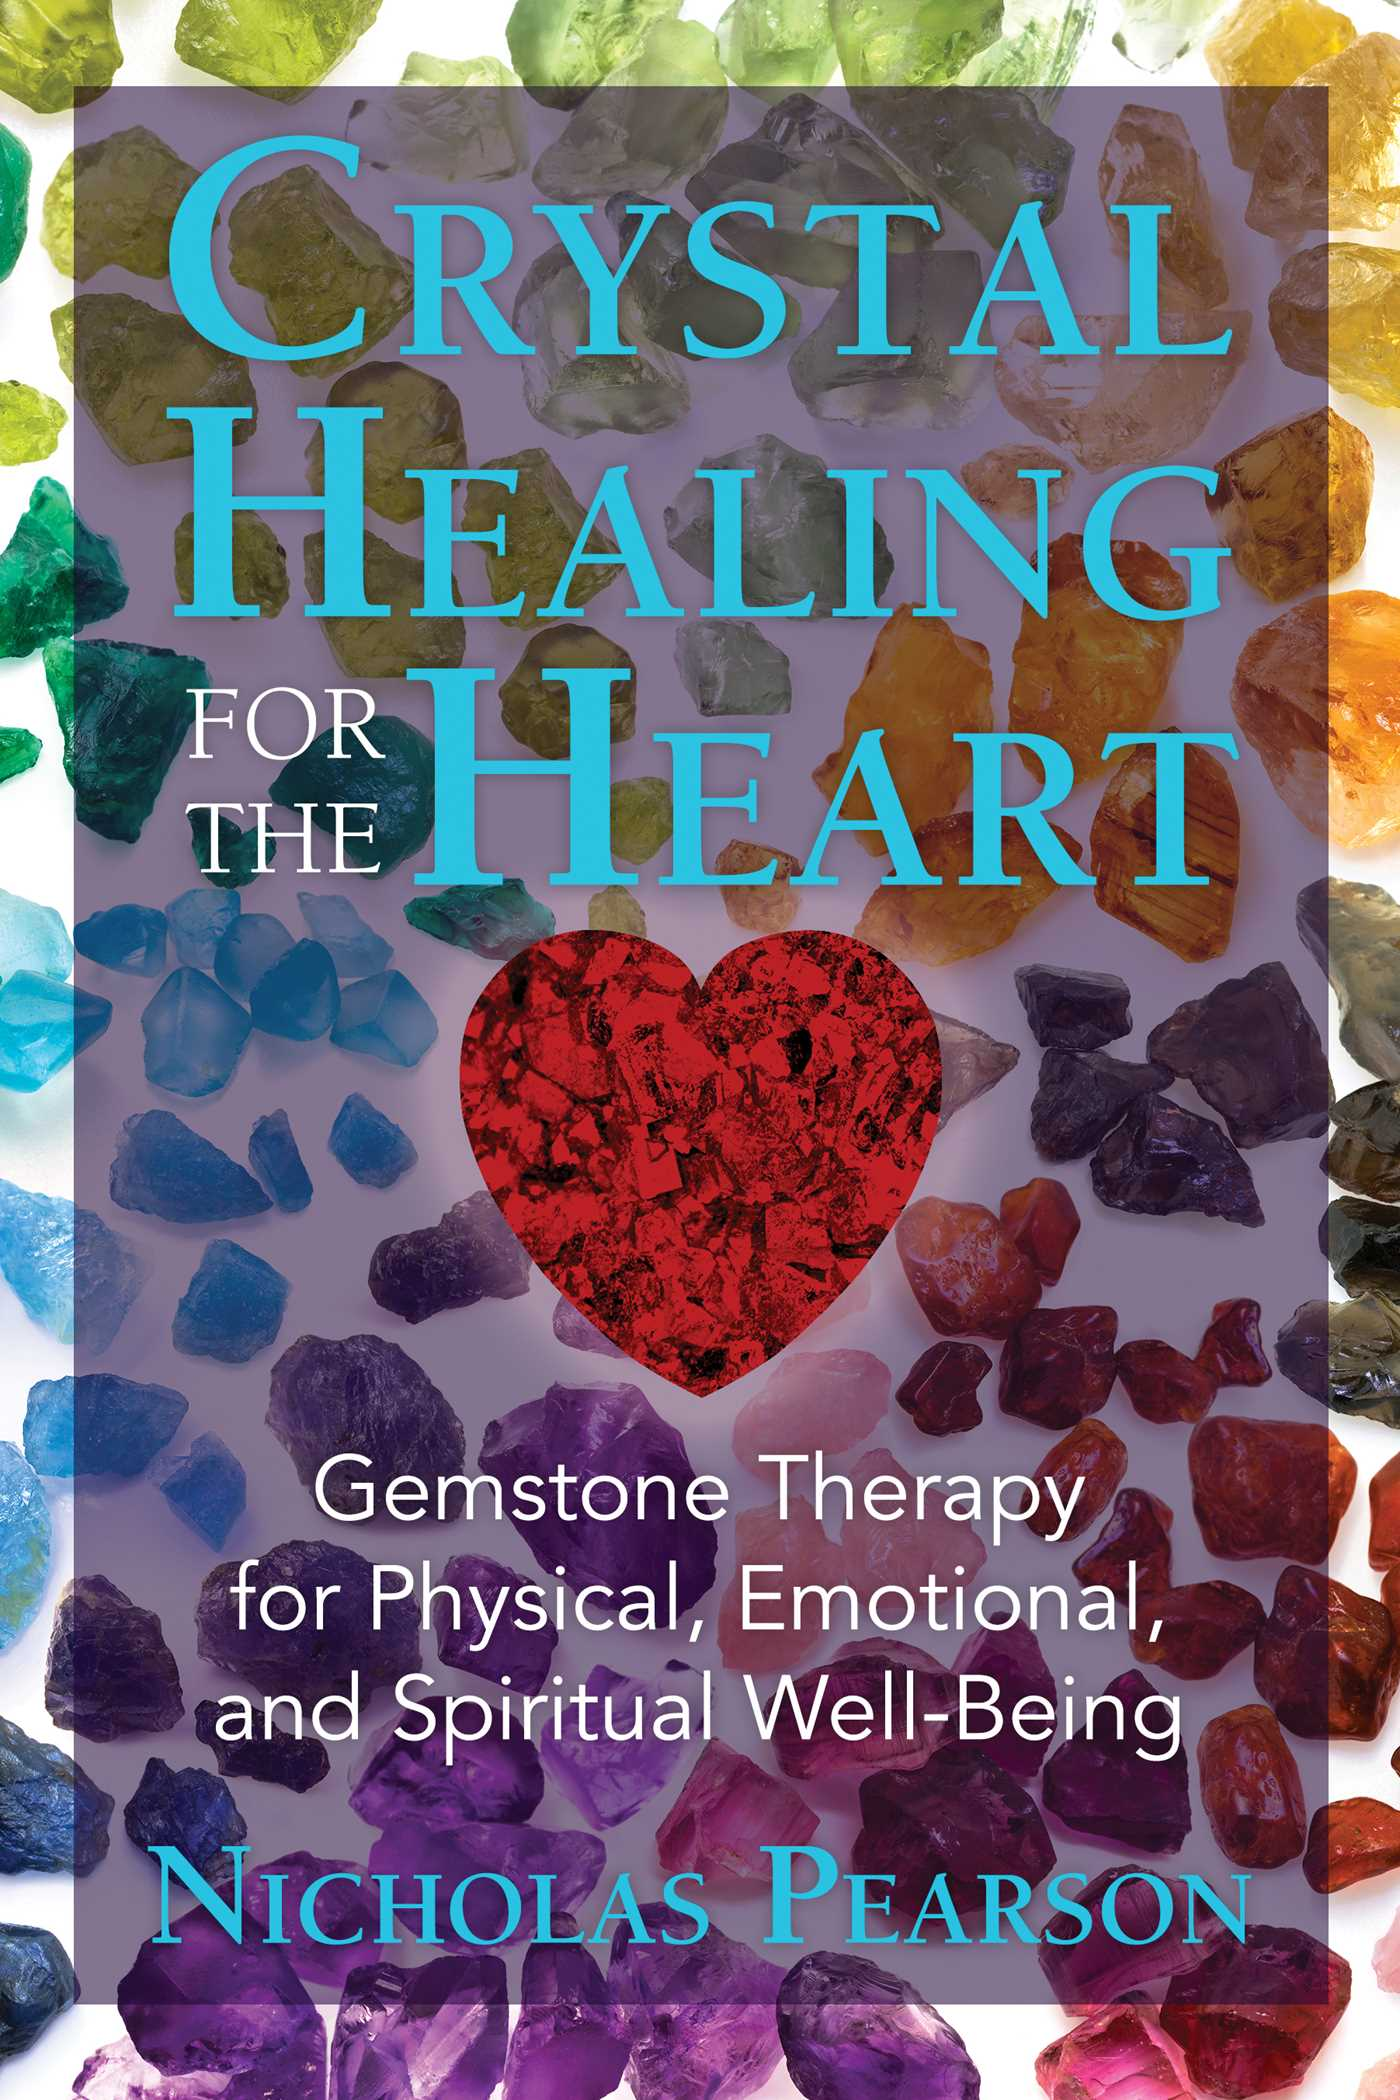 Crystal healing for the heart 9781620556566 hr